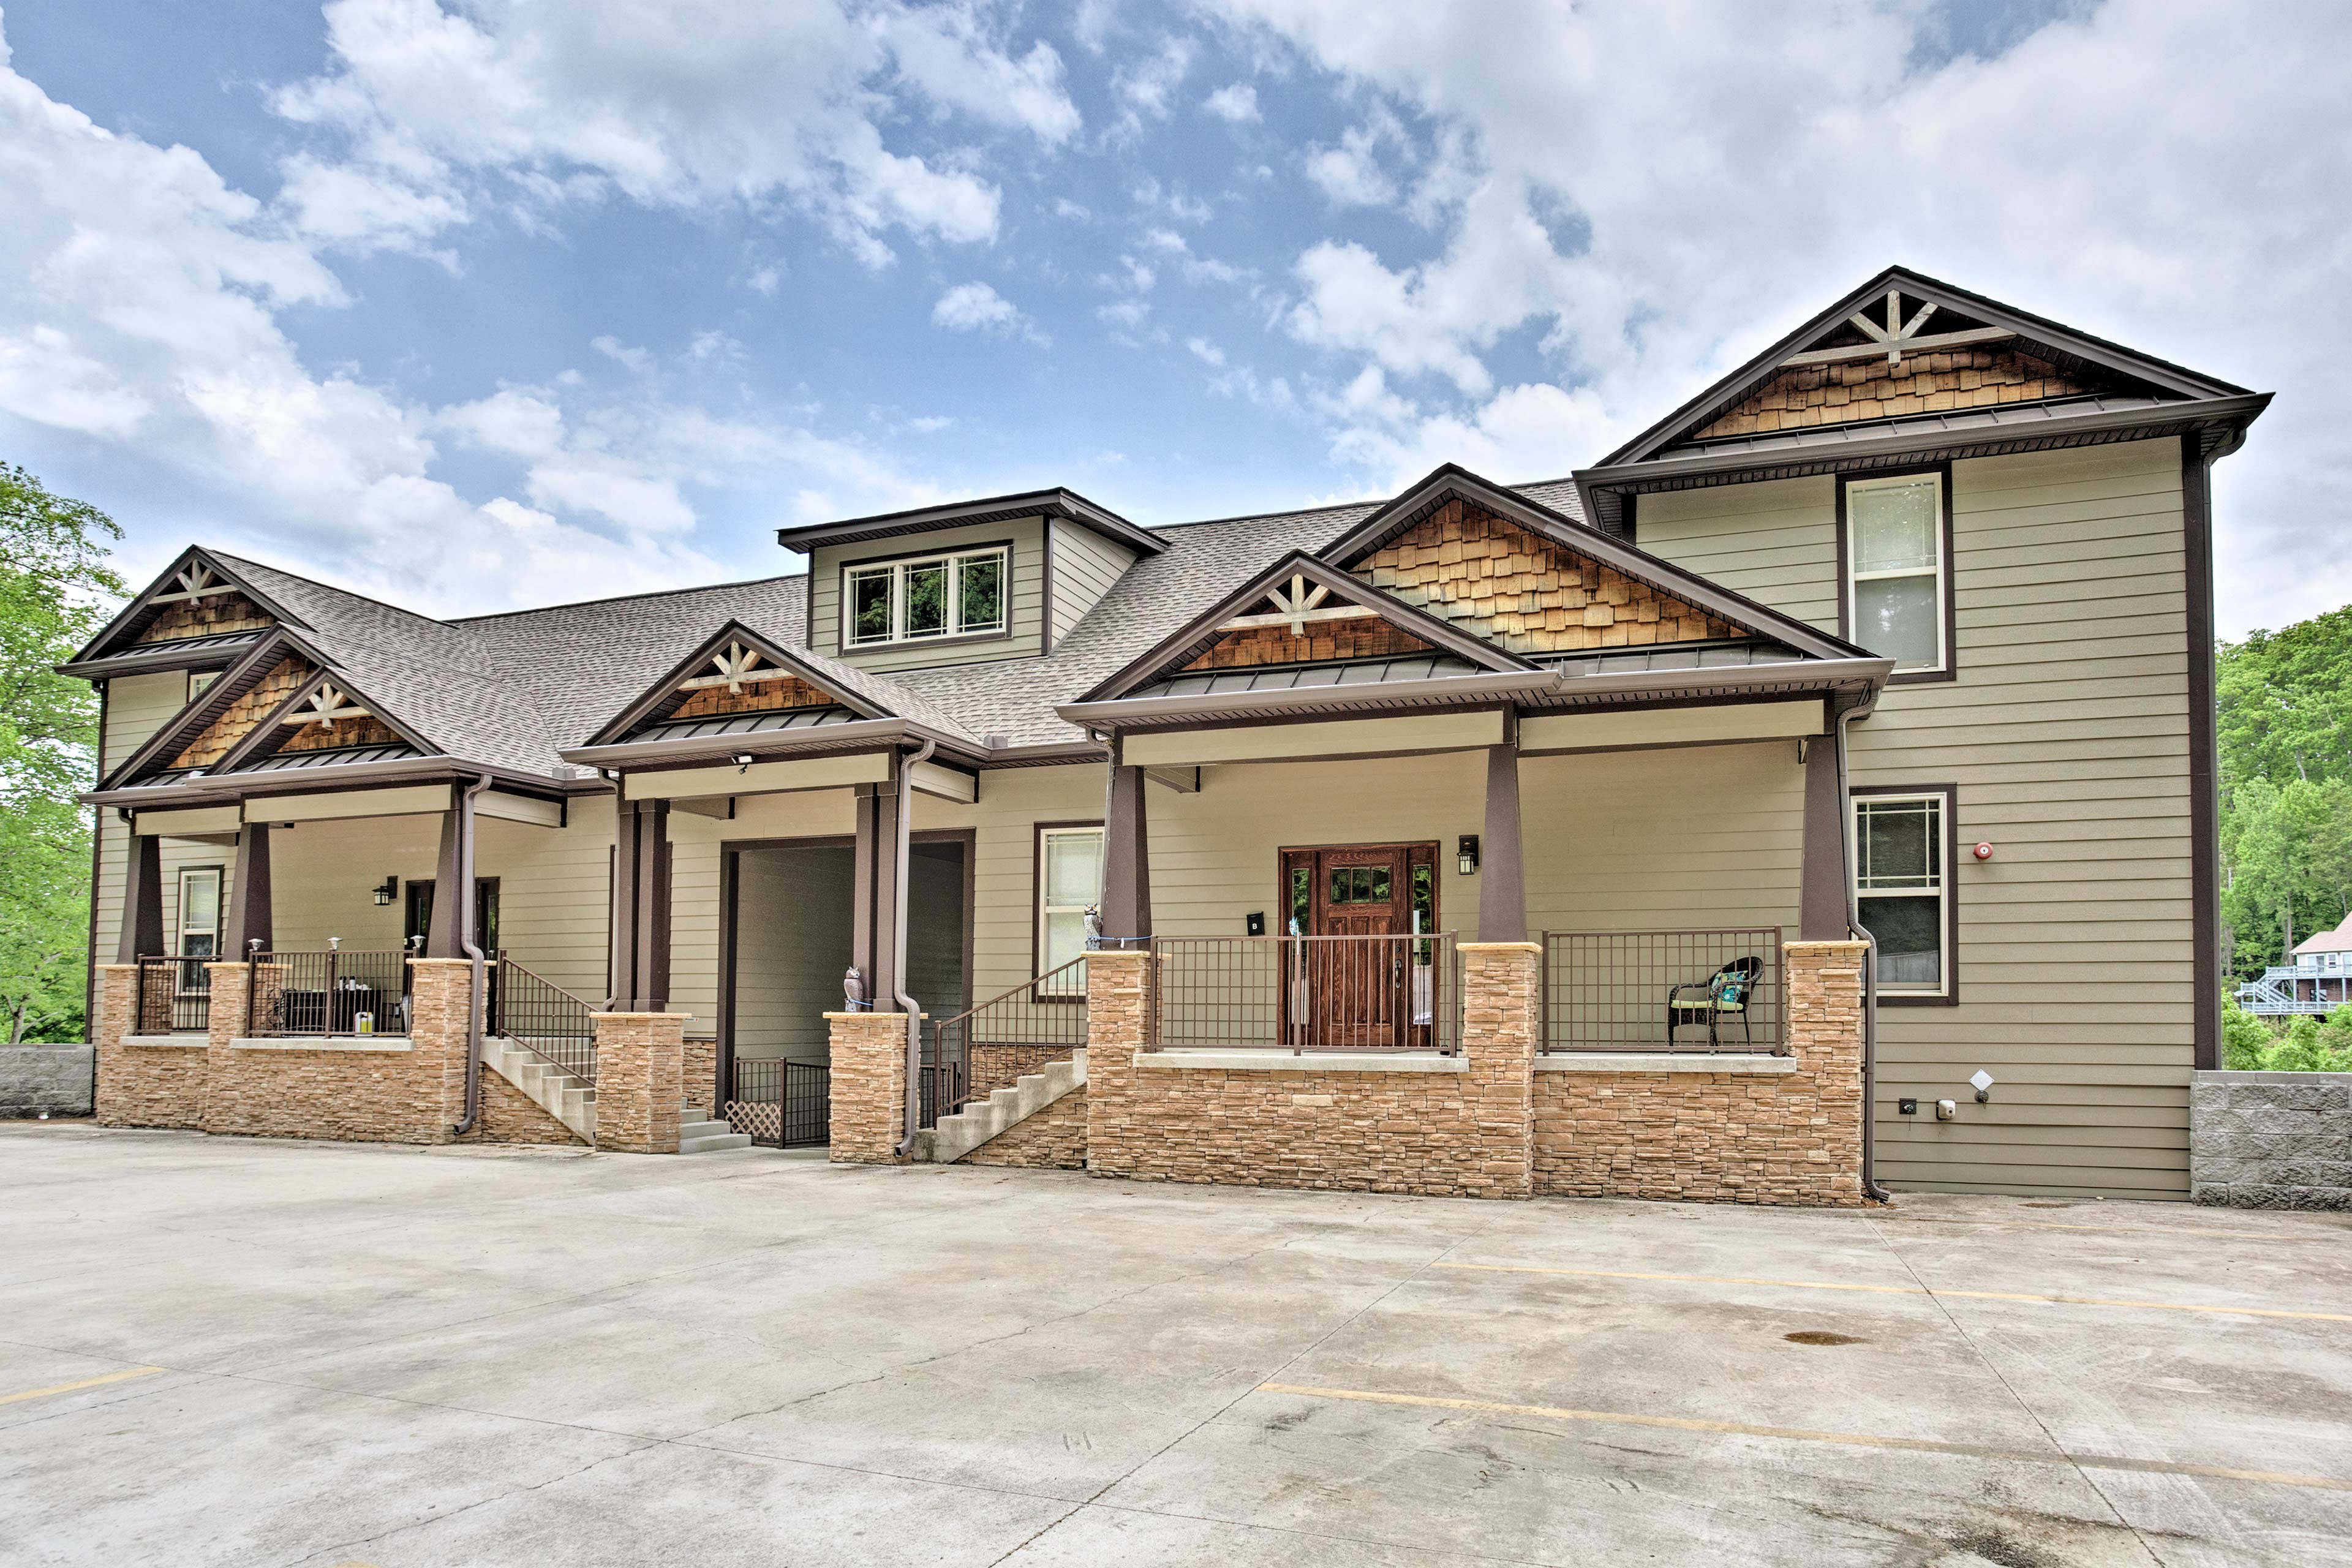 This beautiful abode features 3 bedrooms and 2.5 bathrooms.